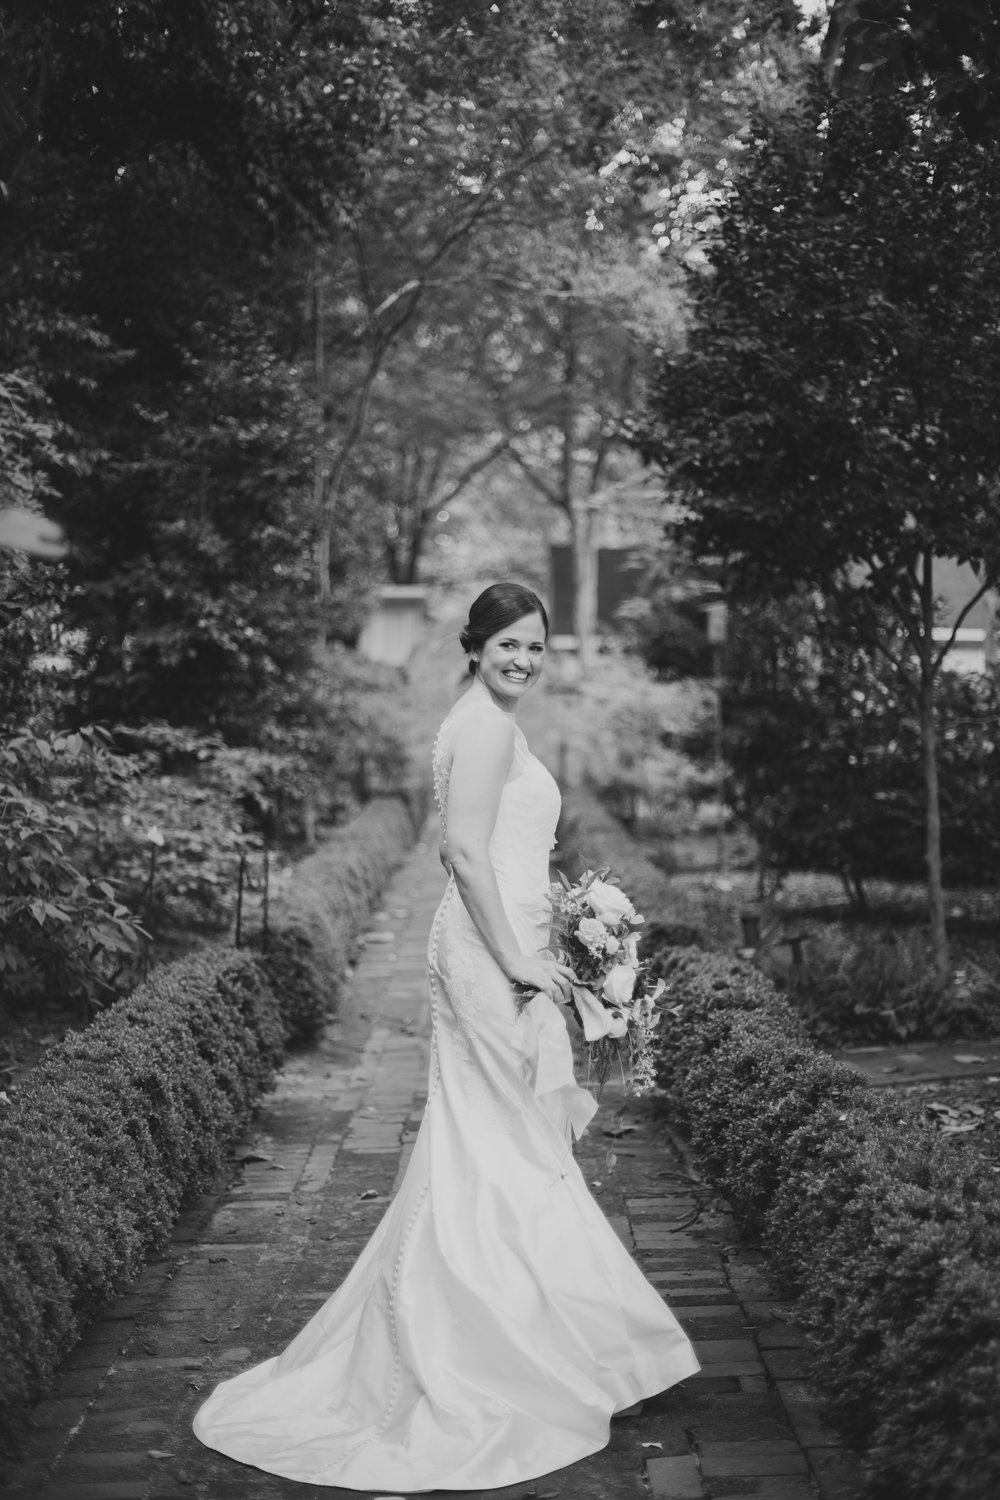 AliceBridals - Alicia White Photography-14.jpg